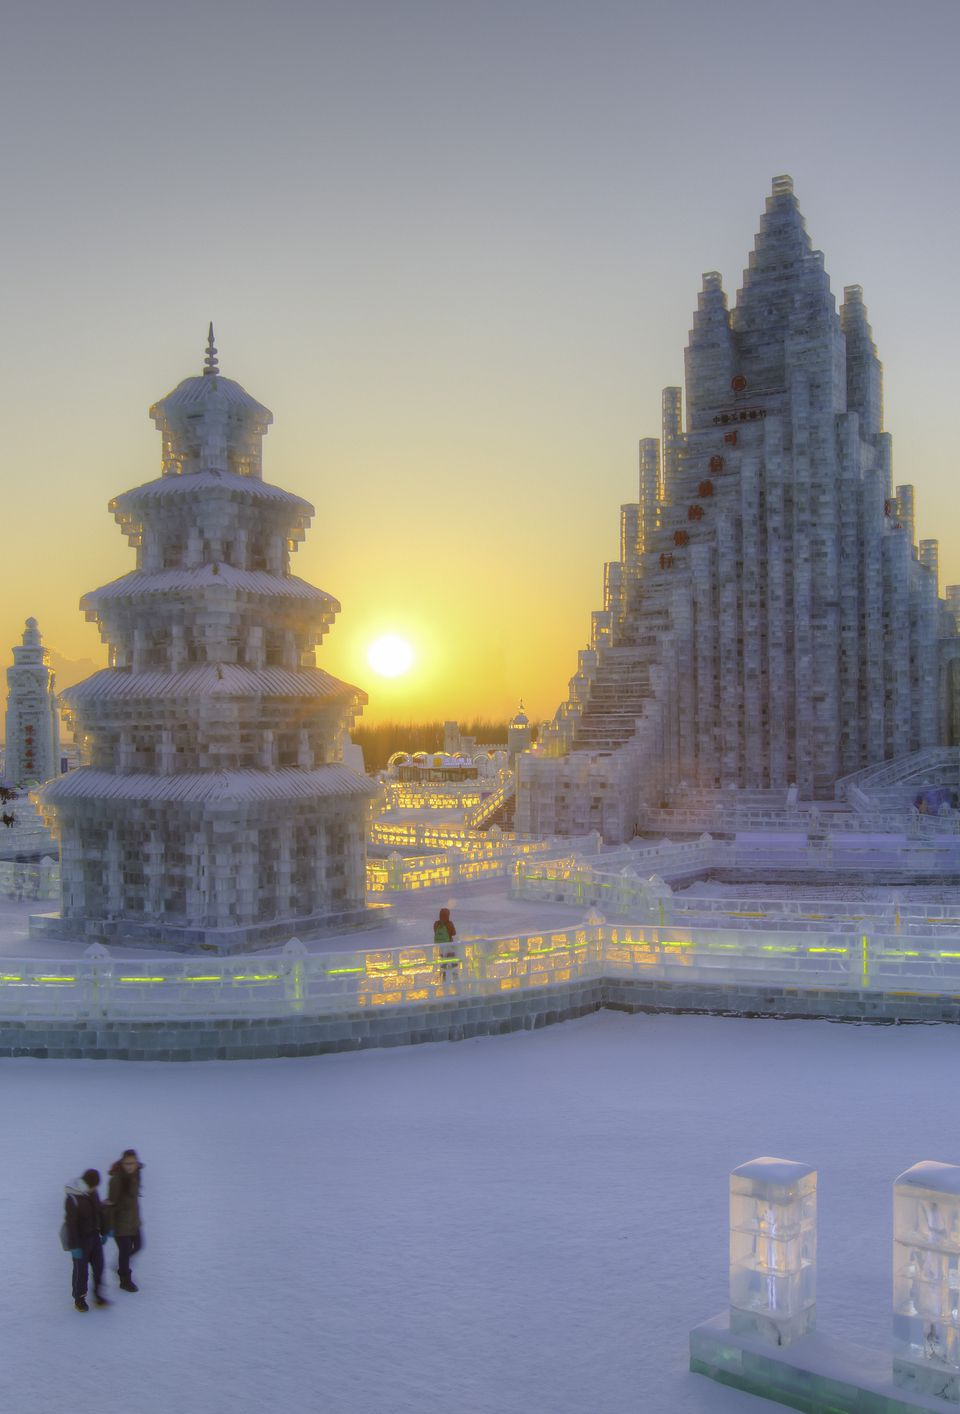 China, Harbin, Heilongjiang Province, Spectacular illuminated ice sculptures at Harbin Ice and Snow Festival